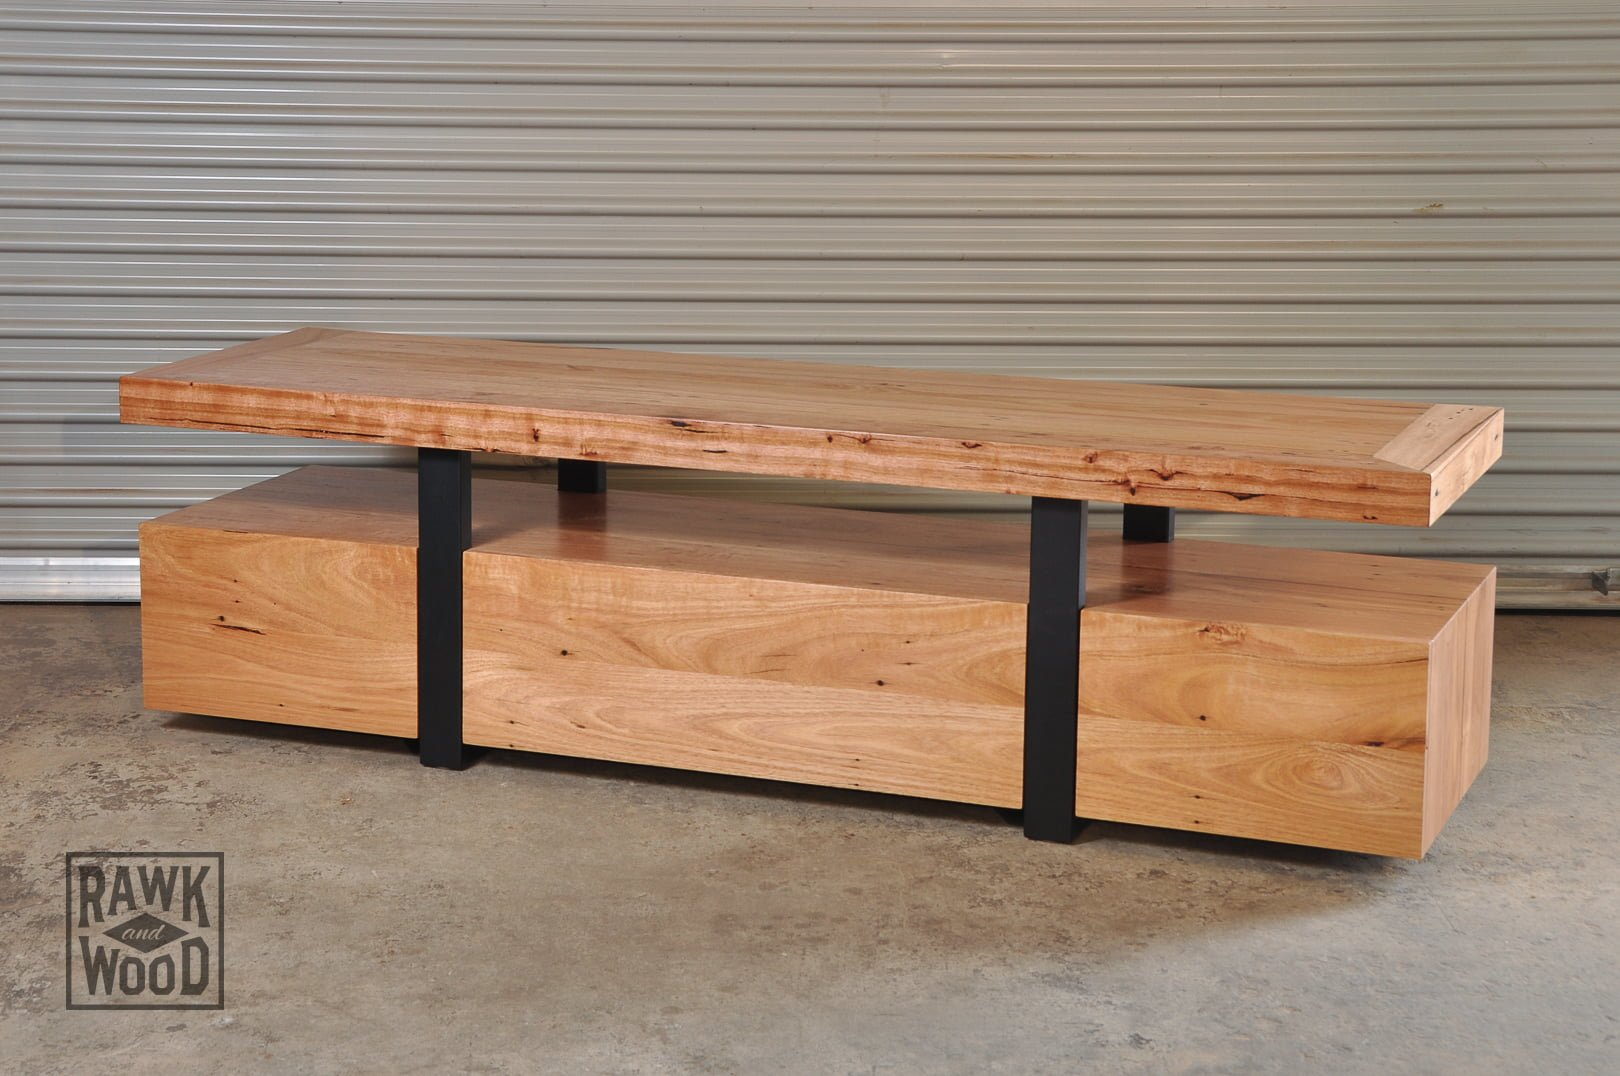 Recycled-Timber-TV-Unit, made in Melbourne by Rawk and Wood